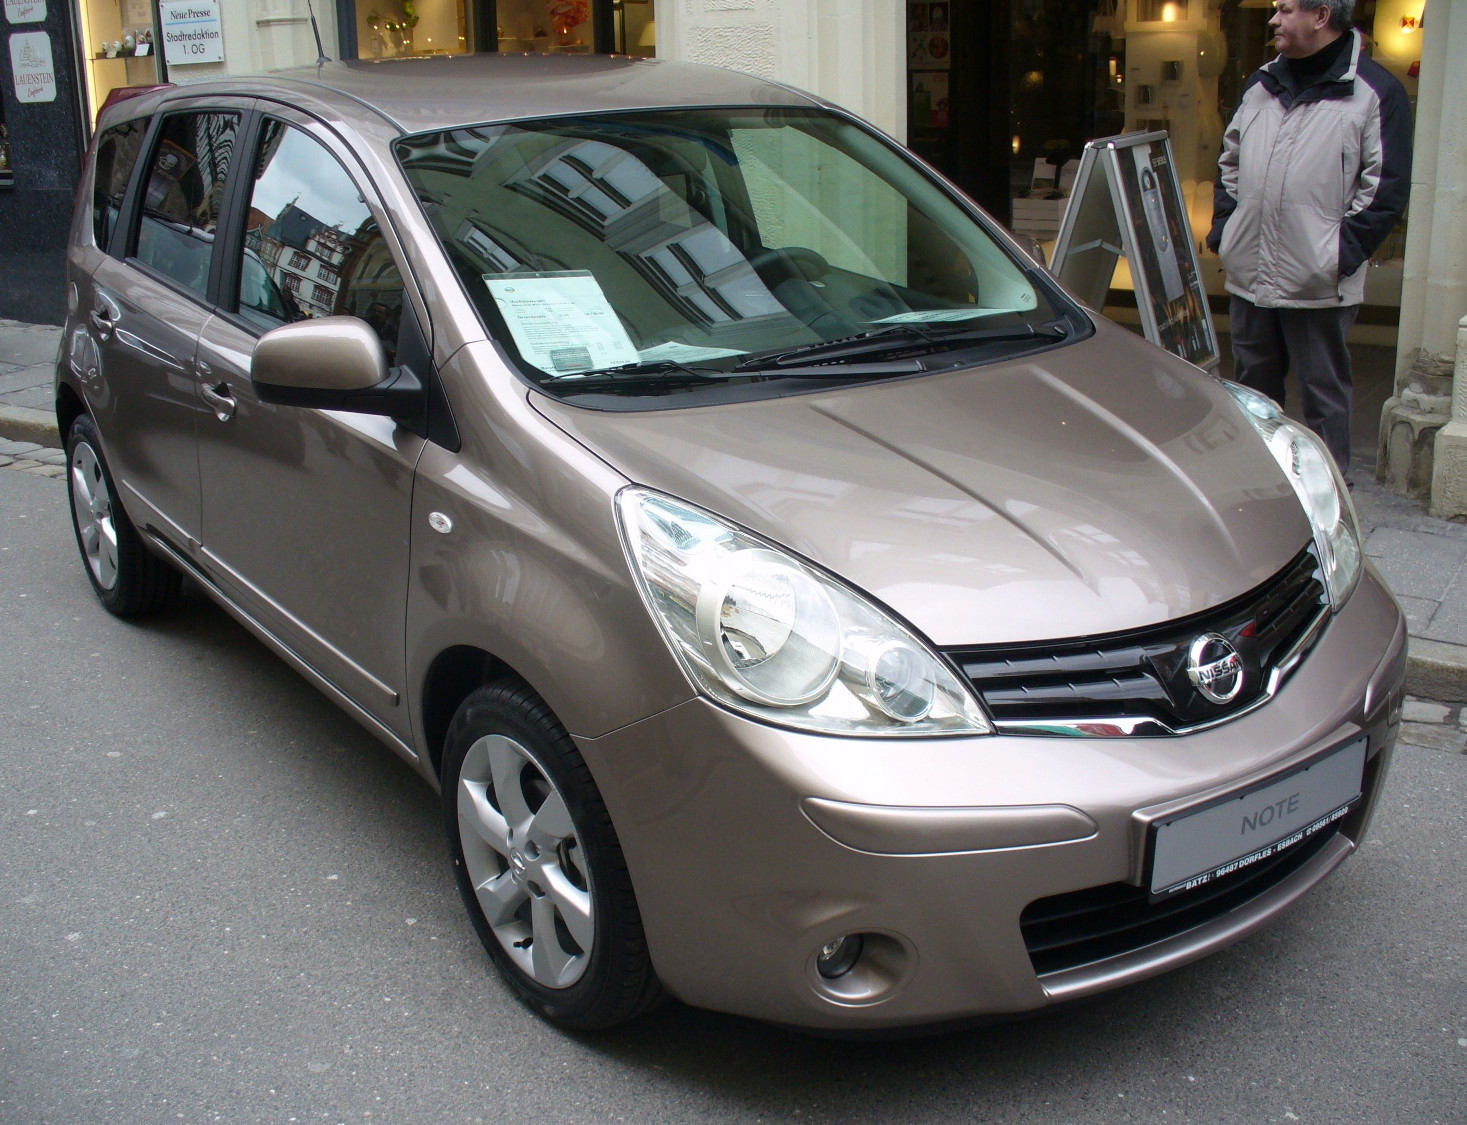 file nissan note tekna caf latte facelift 2009 jpg wikimedia commons. Black Bedroom Furniture Sets. Home Design Ideas